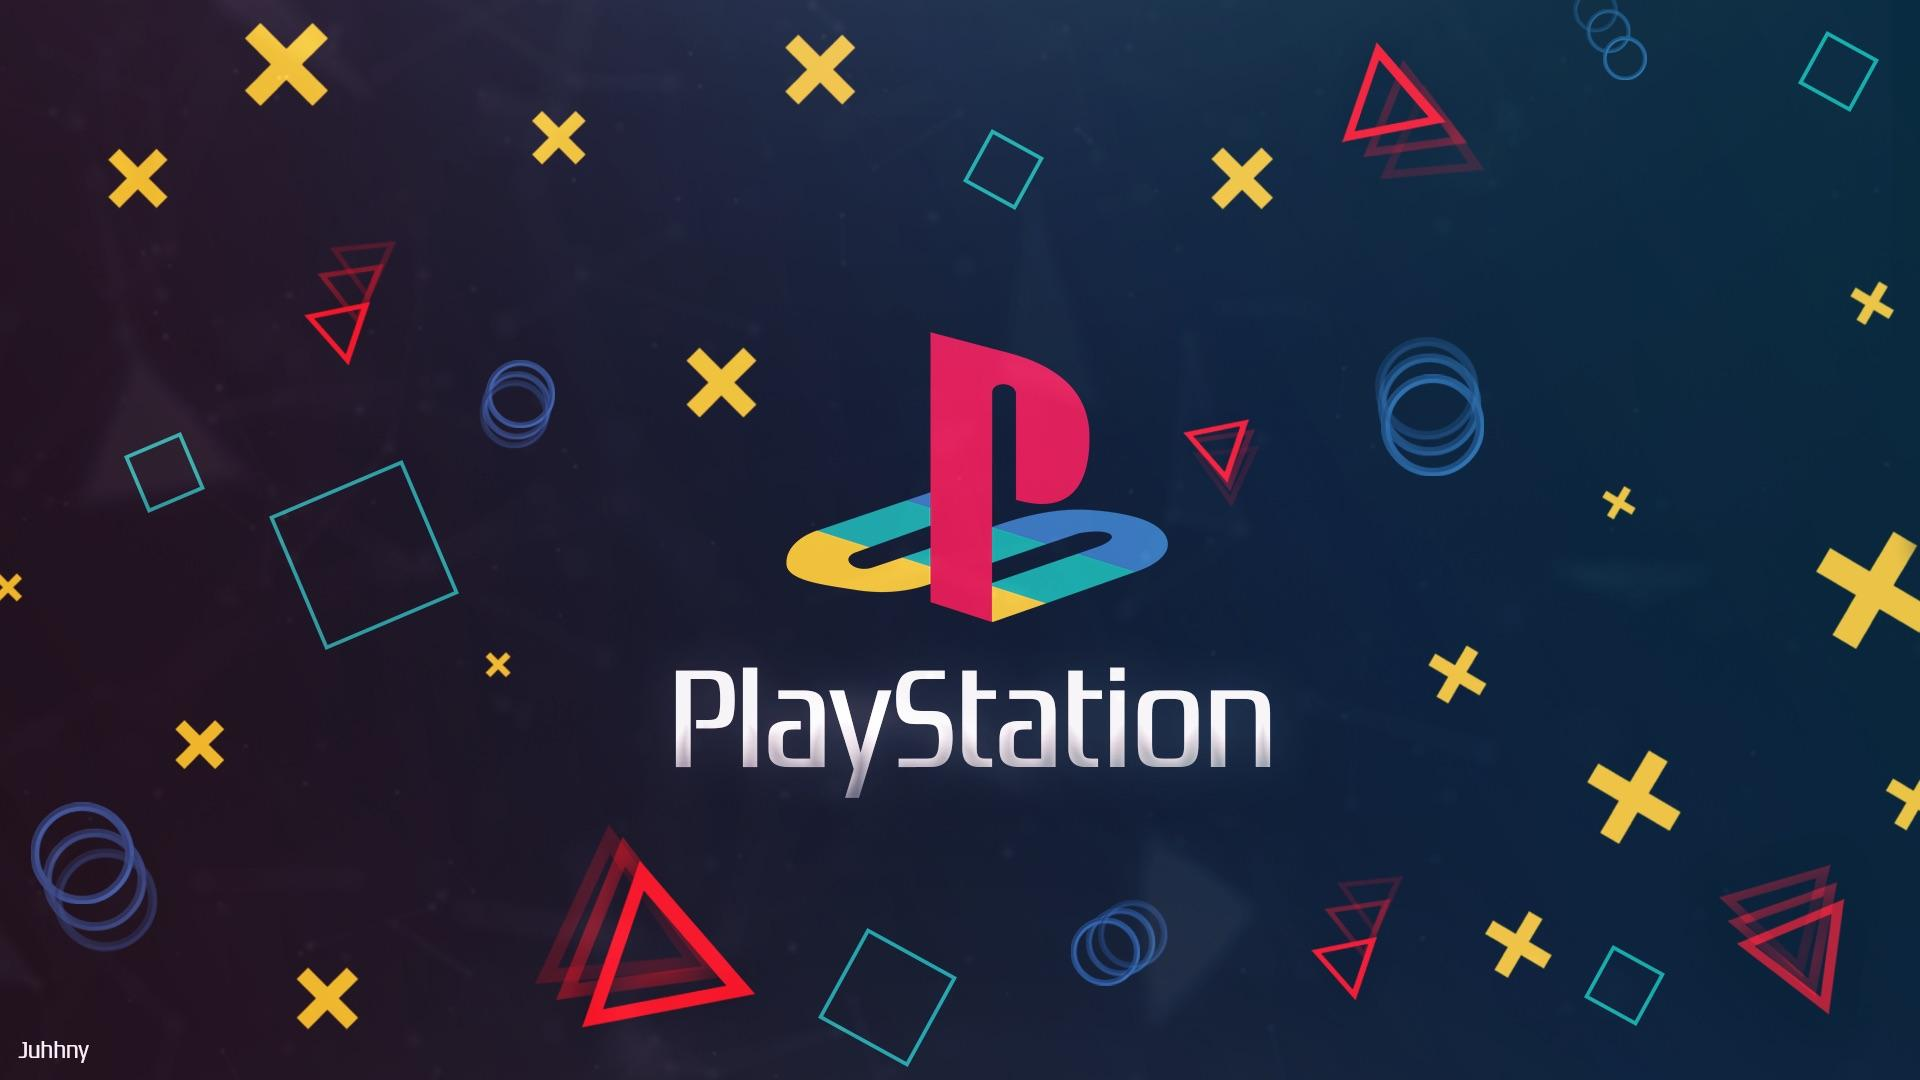 PlayStation 5 Wallpapers   Top PlayStation 5 Backgrounds 1920x1080